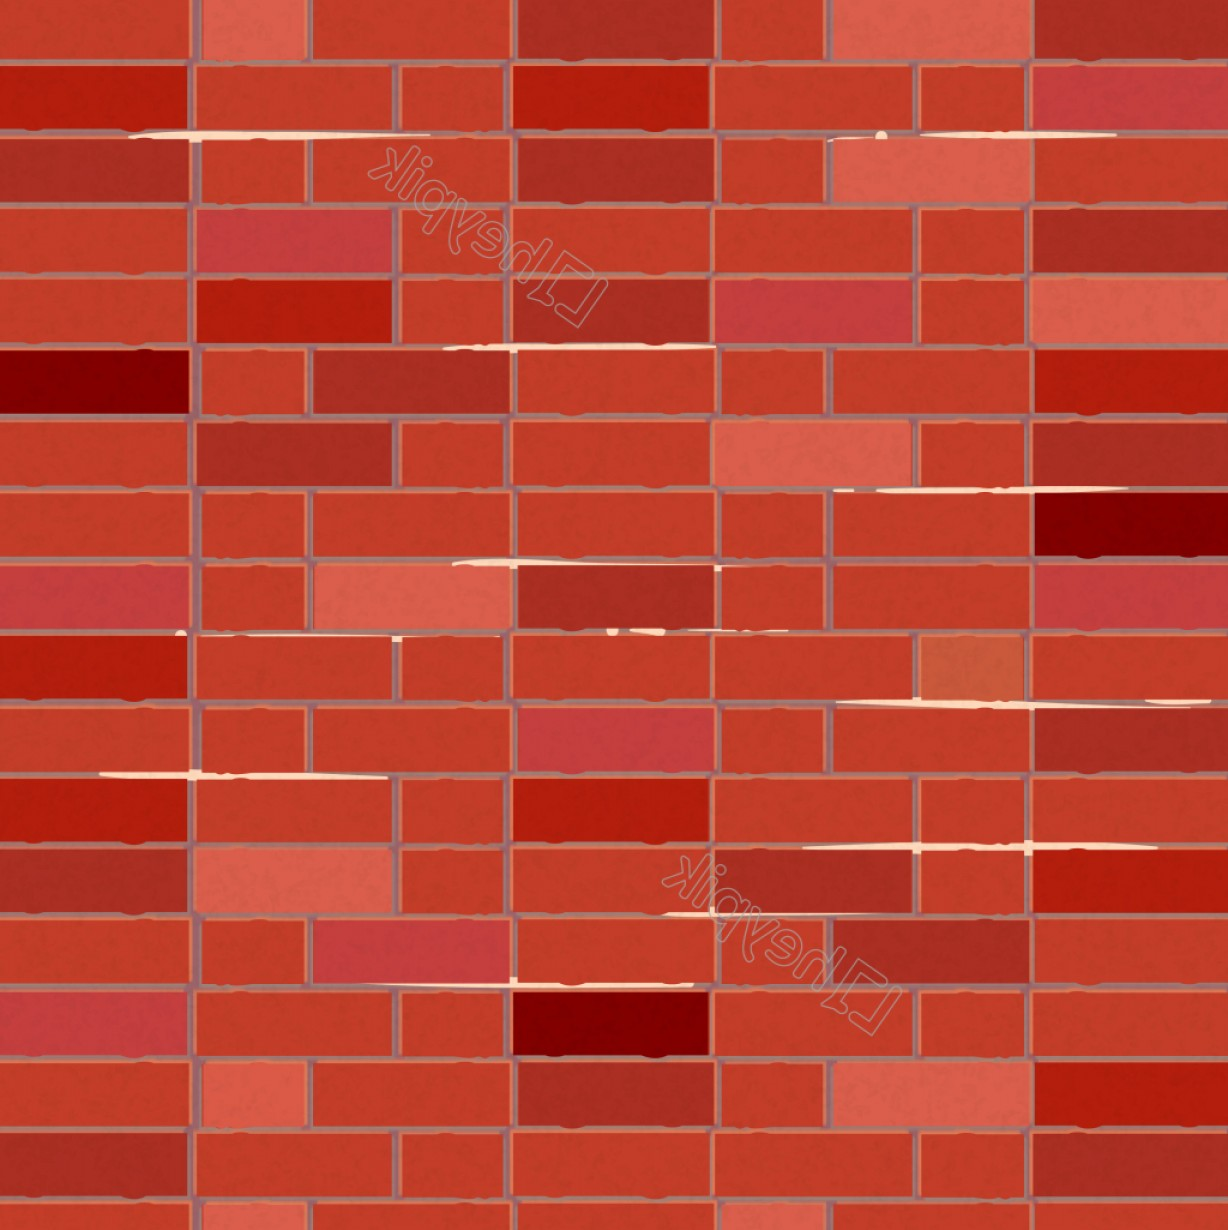 Brick Vector Ai File: Vector Vintage Red Brick Wall Background